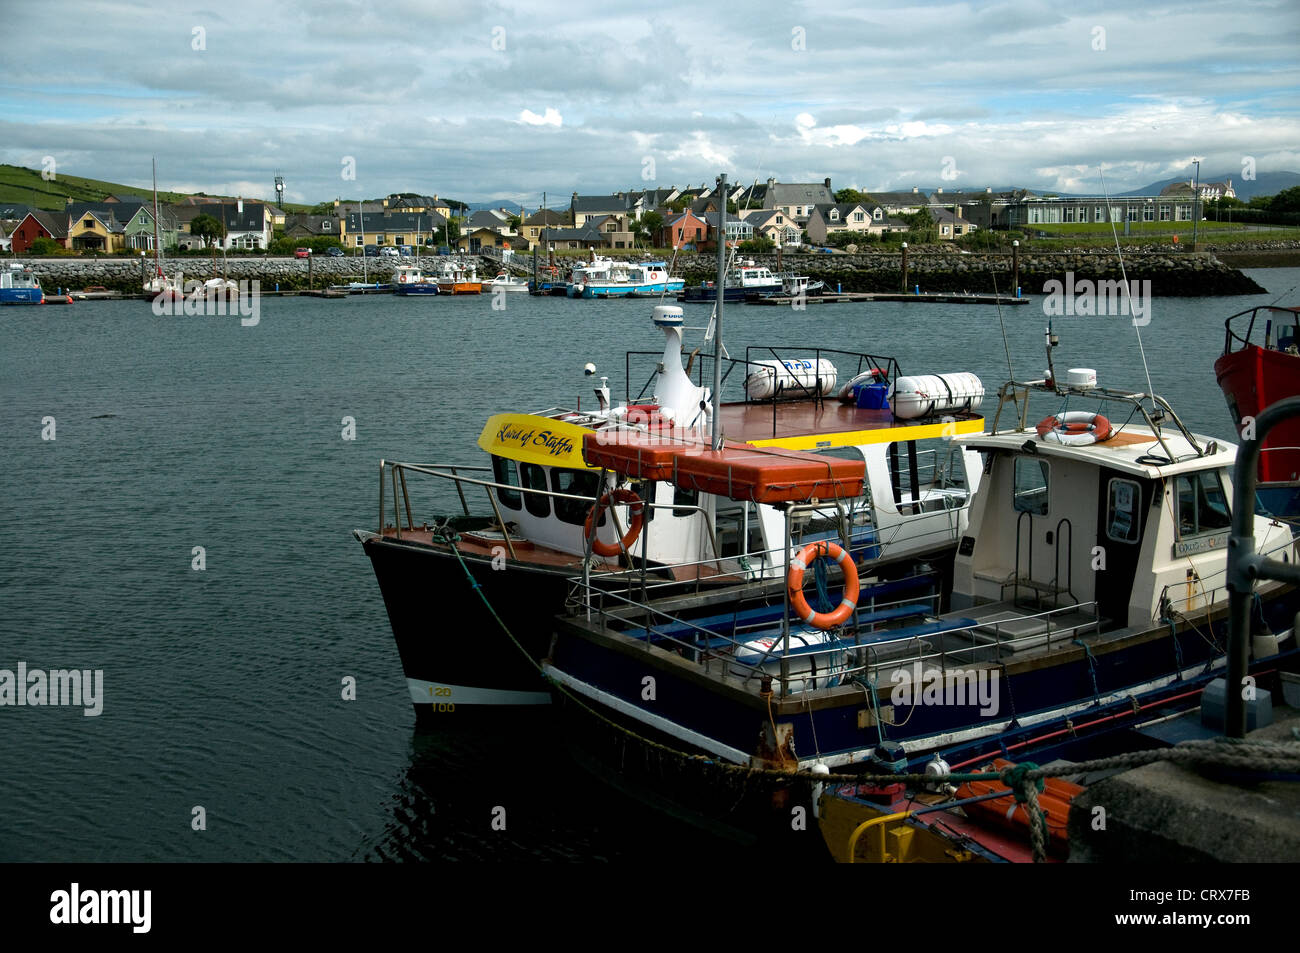 Dingle puerto con barcos, la ciudad es un popular resort en Co.Kerry, Irlanda Imagen De Stock